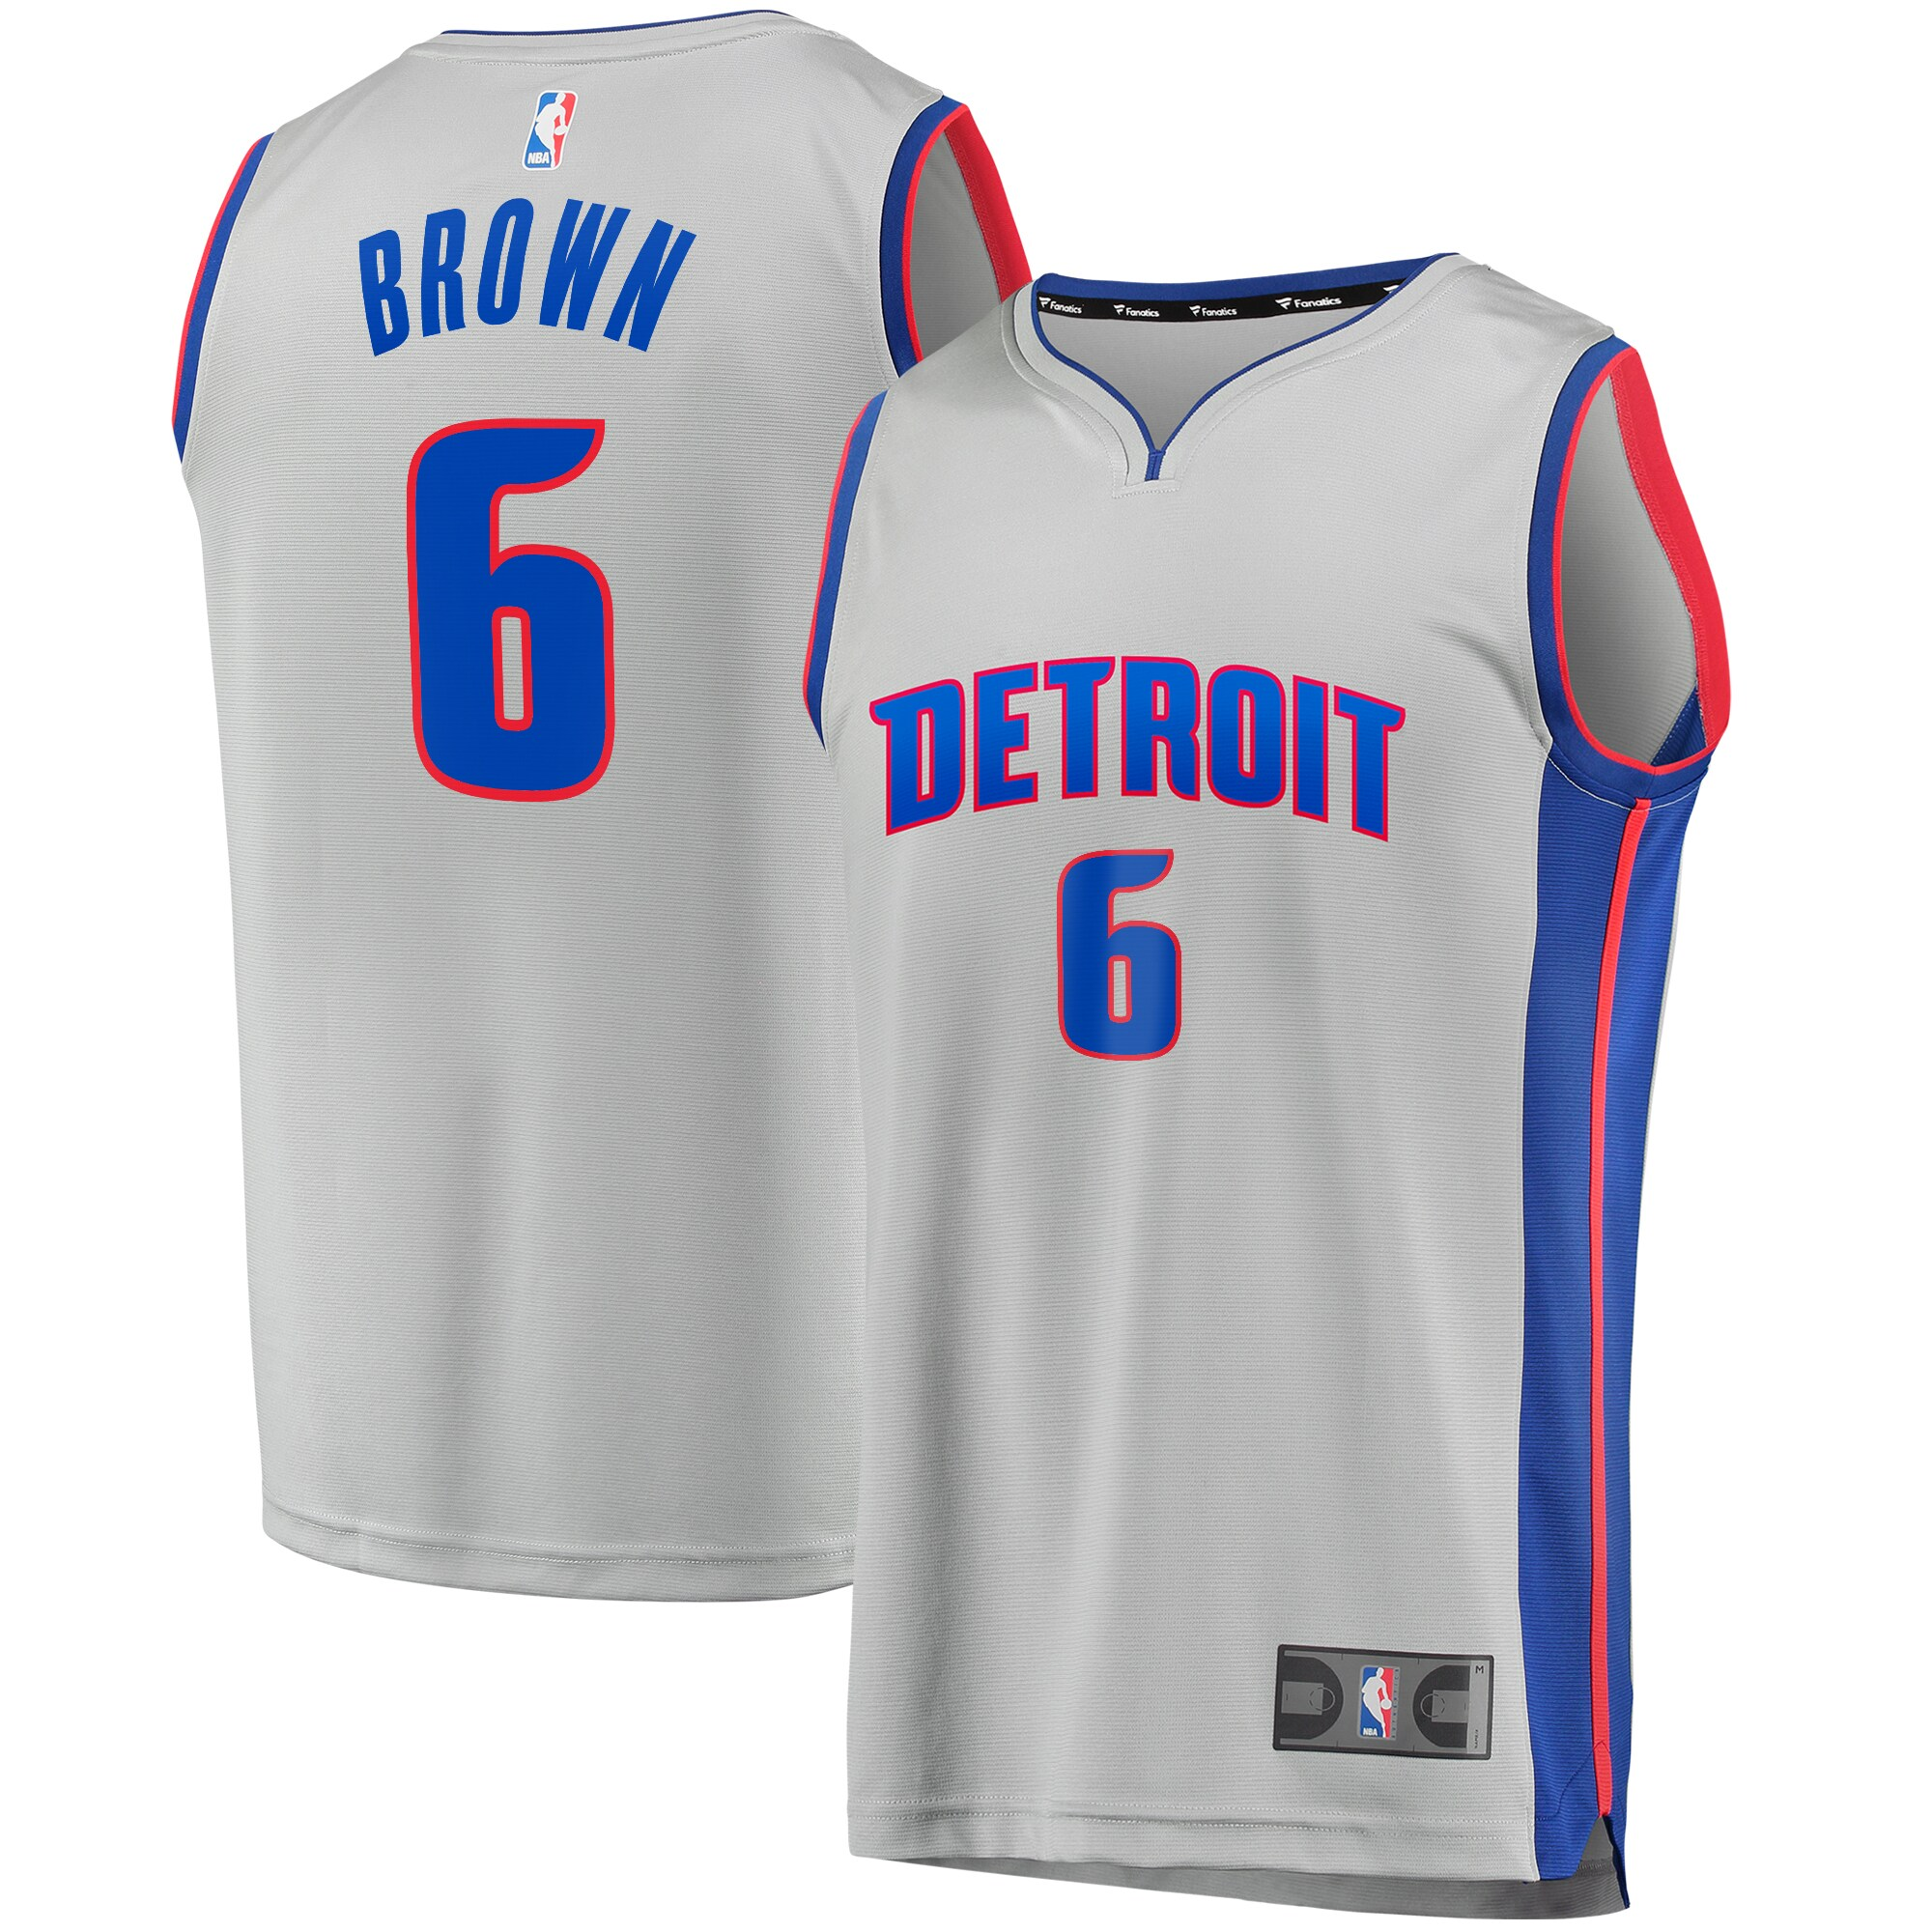 Bruce Brown Detroit Pistons Fanatics Branded Youth Fast Break Replica Player Jersey - Statement Edition - Gray